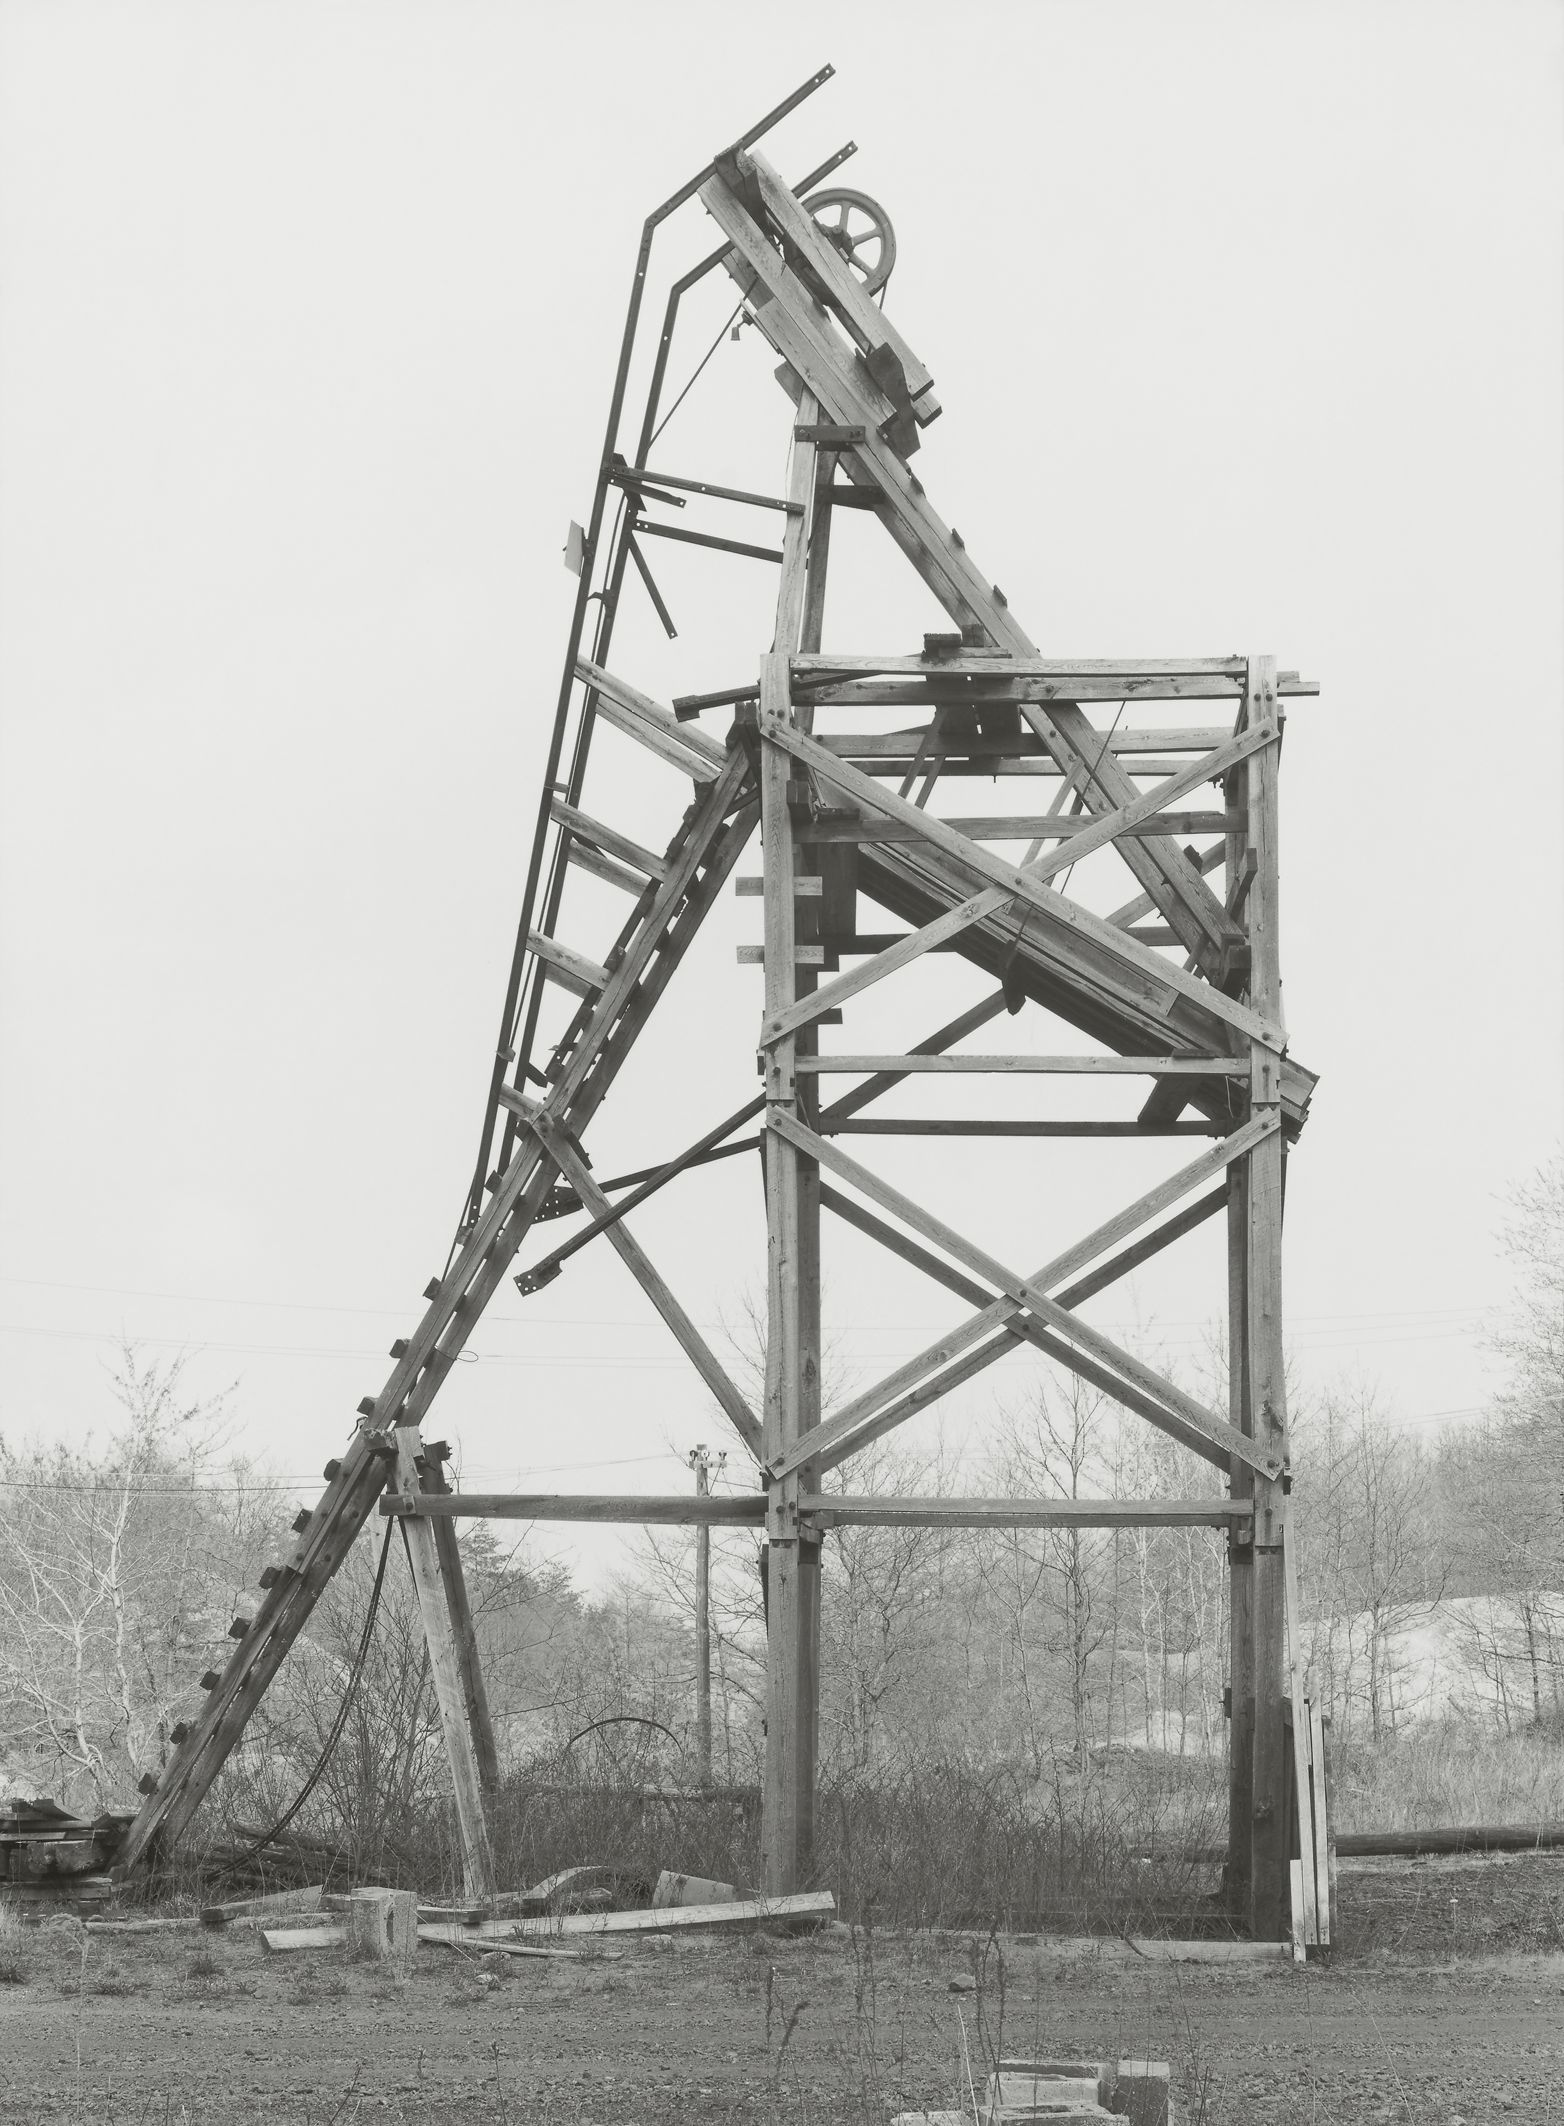 Bernd & Hilla Becher: Reed & Herb Coal Co., Joliett, Schuylkill County, 1975 © Estate Bernd & Hilla Becher, represented by Max Becher